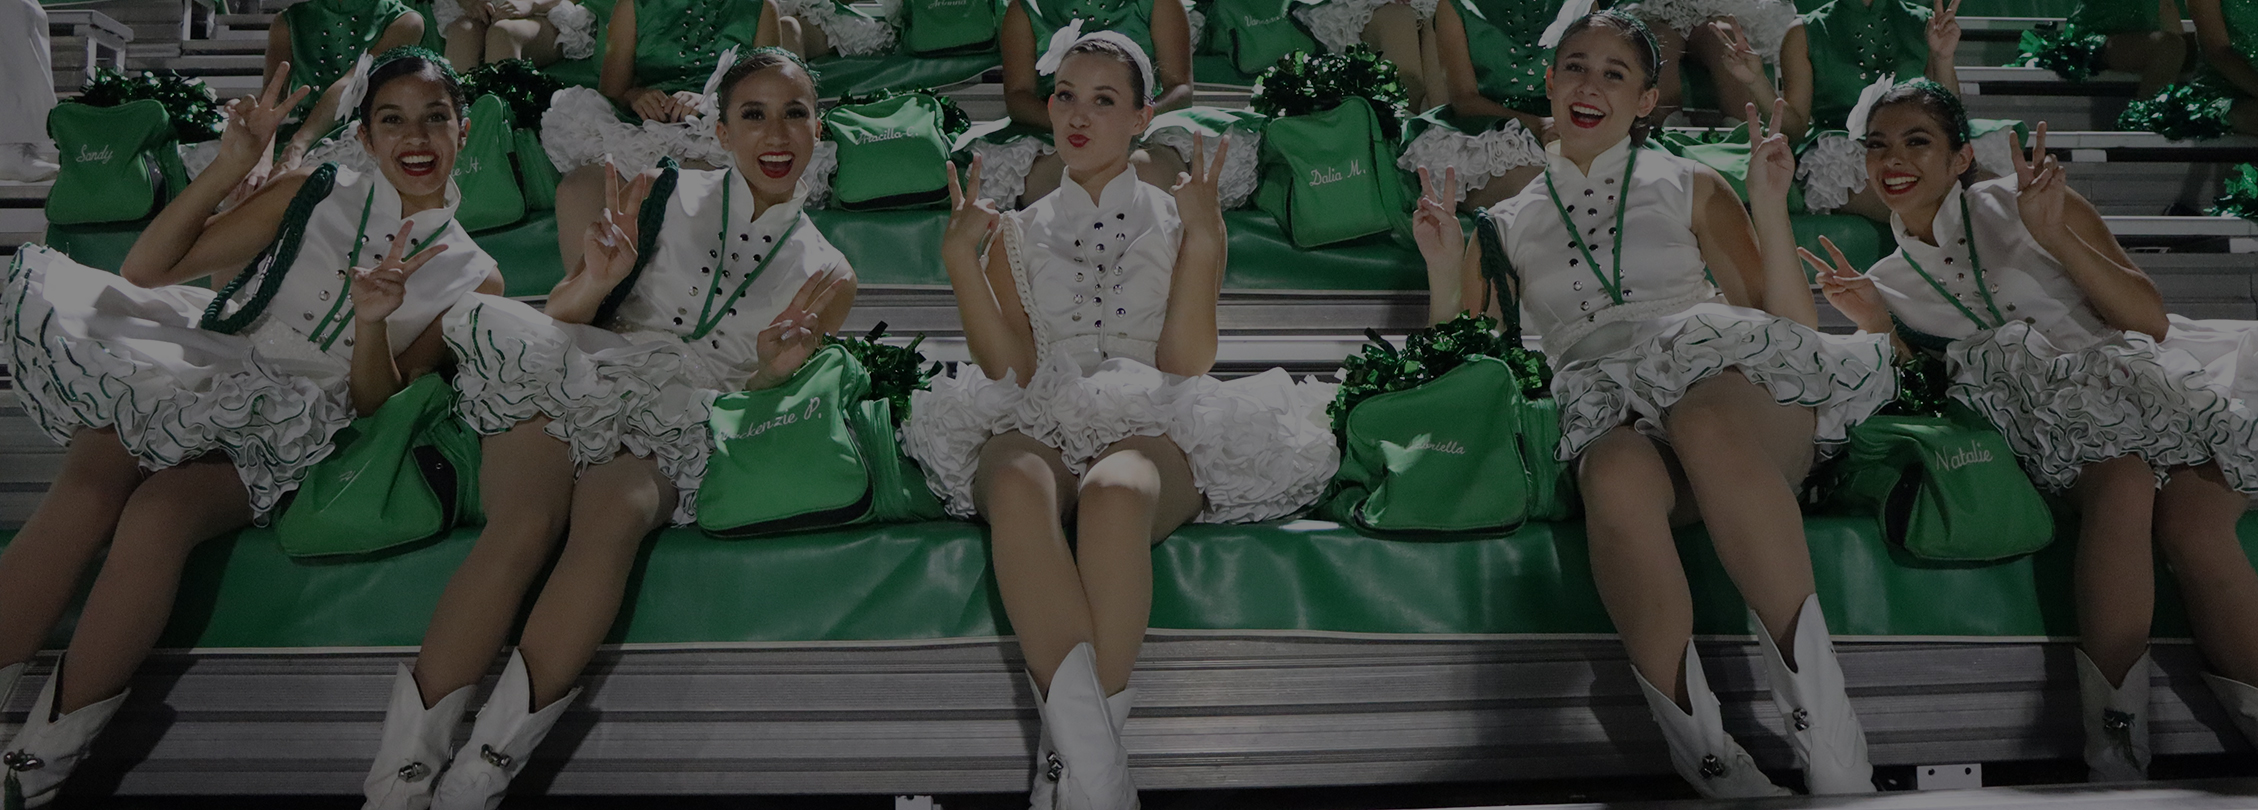 Young cheerleaders posing inwhite and green uniforms on the bleachers